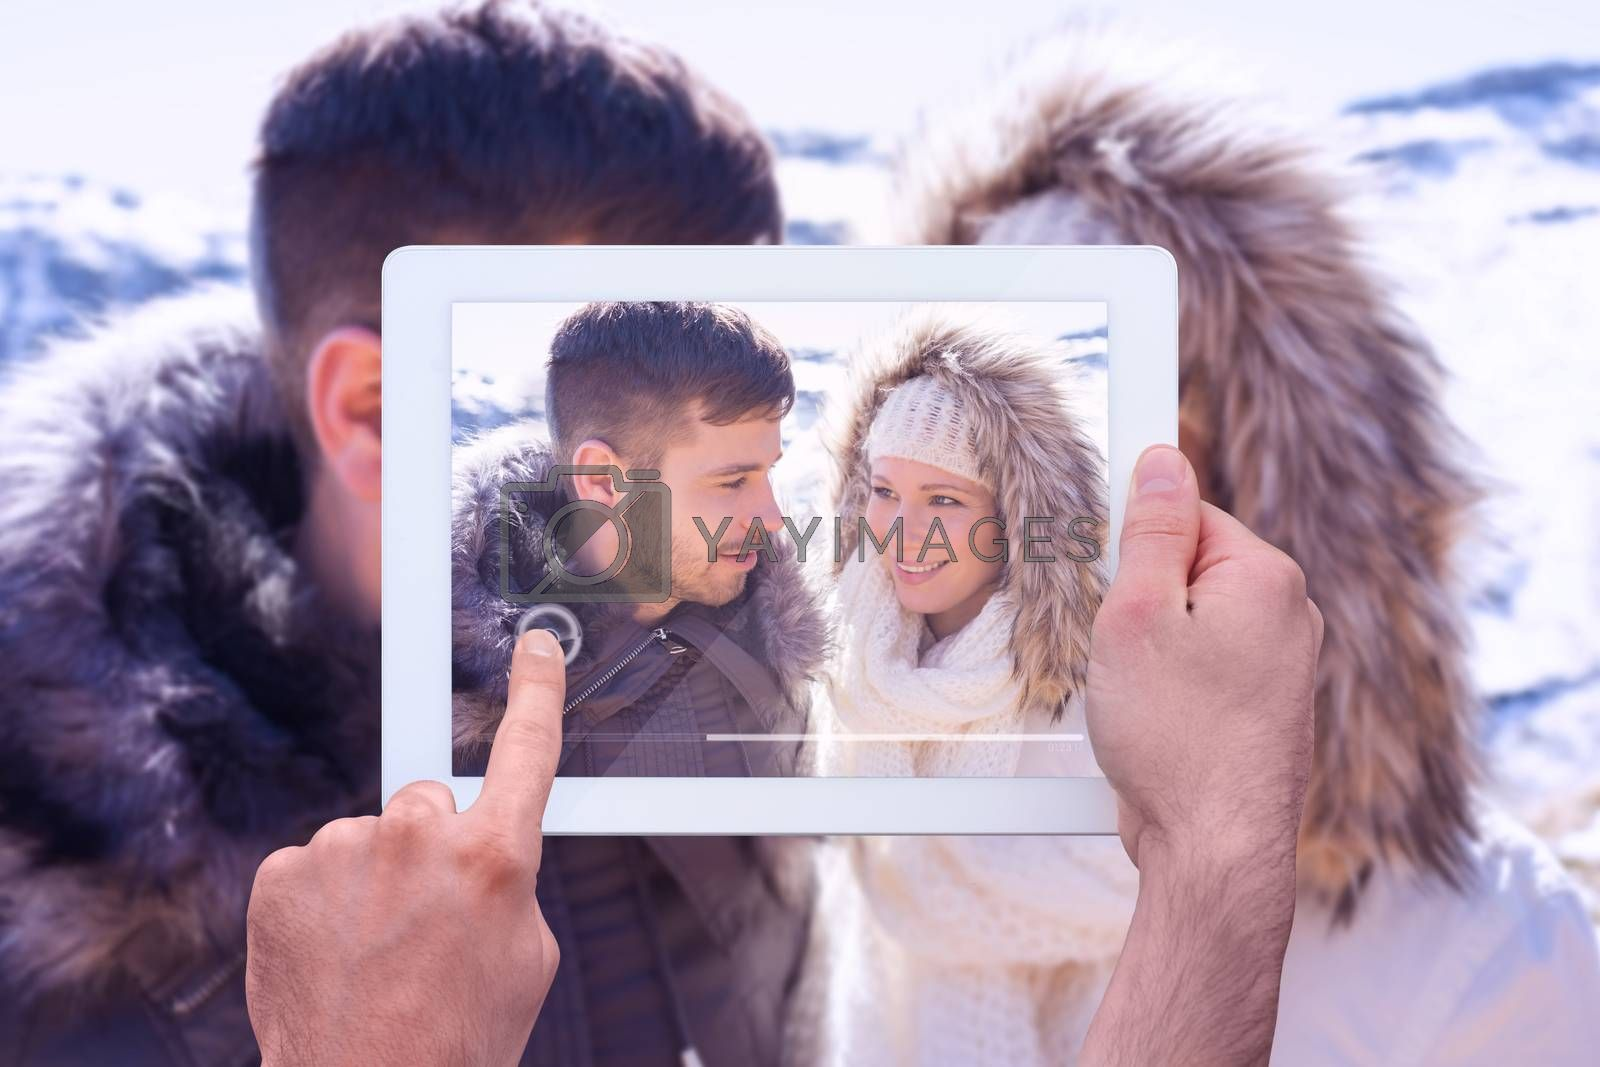 Hand holding tablet pc against couple in fur hood jackets against snowed mountain